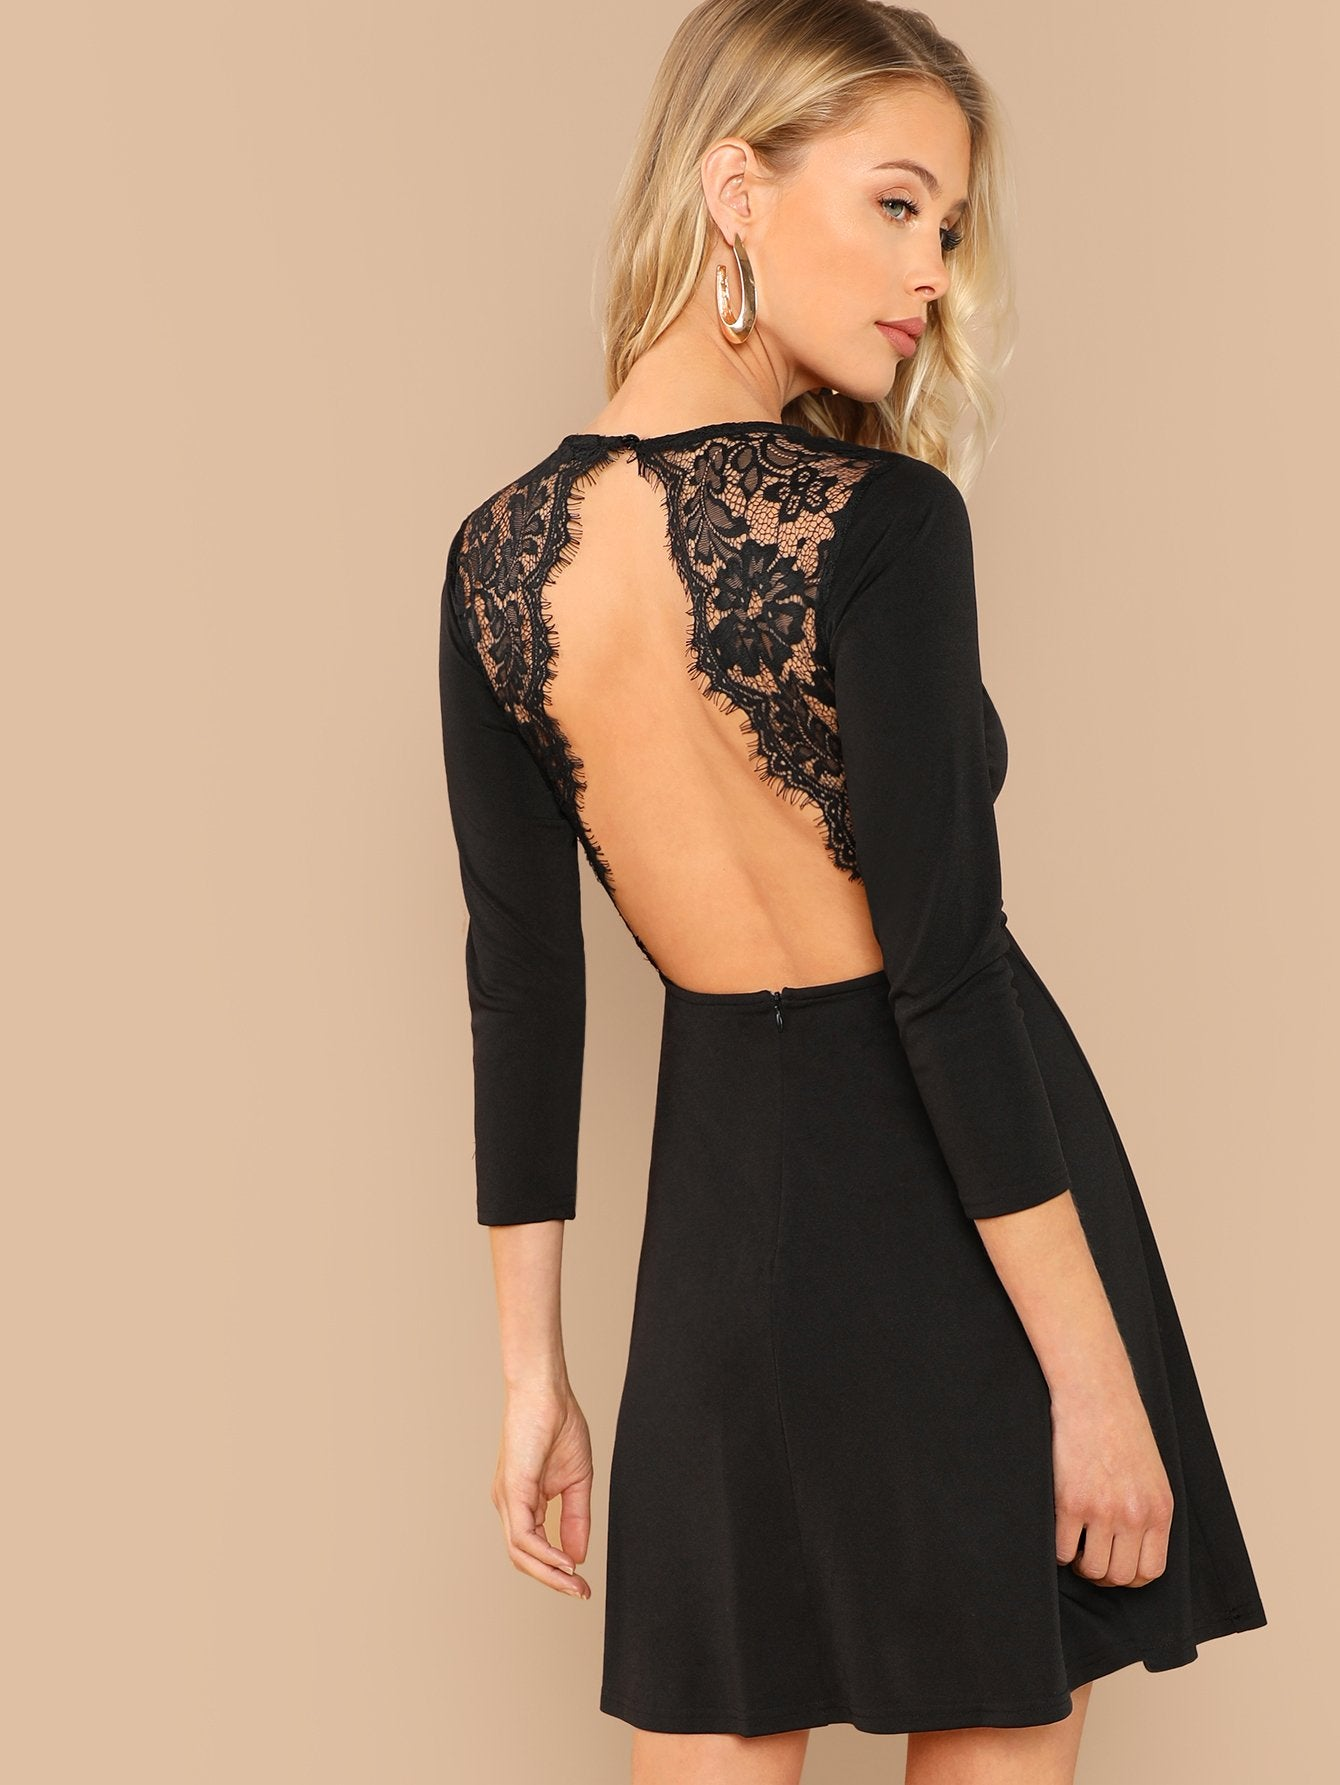 aa418ff339 Casual Dresses - Women's Black Lace Contrast Backless Dress at ...